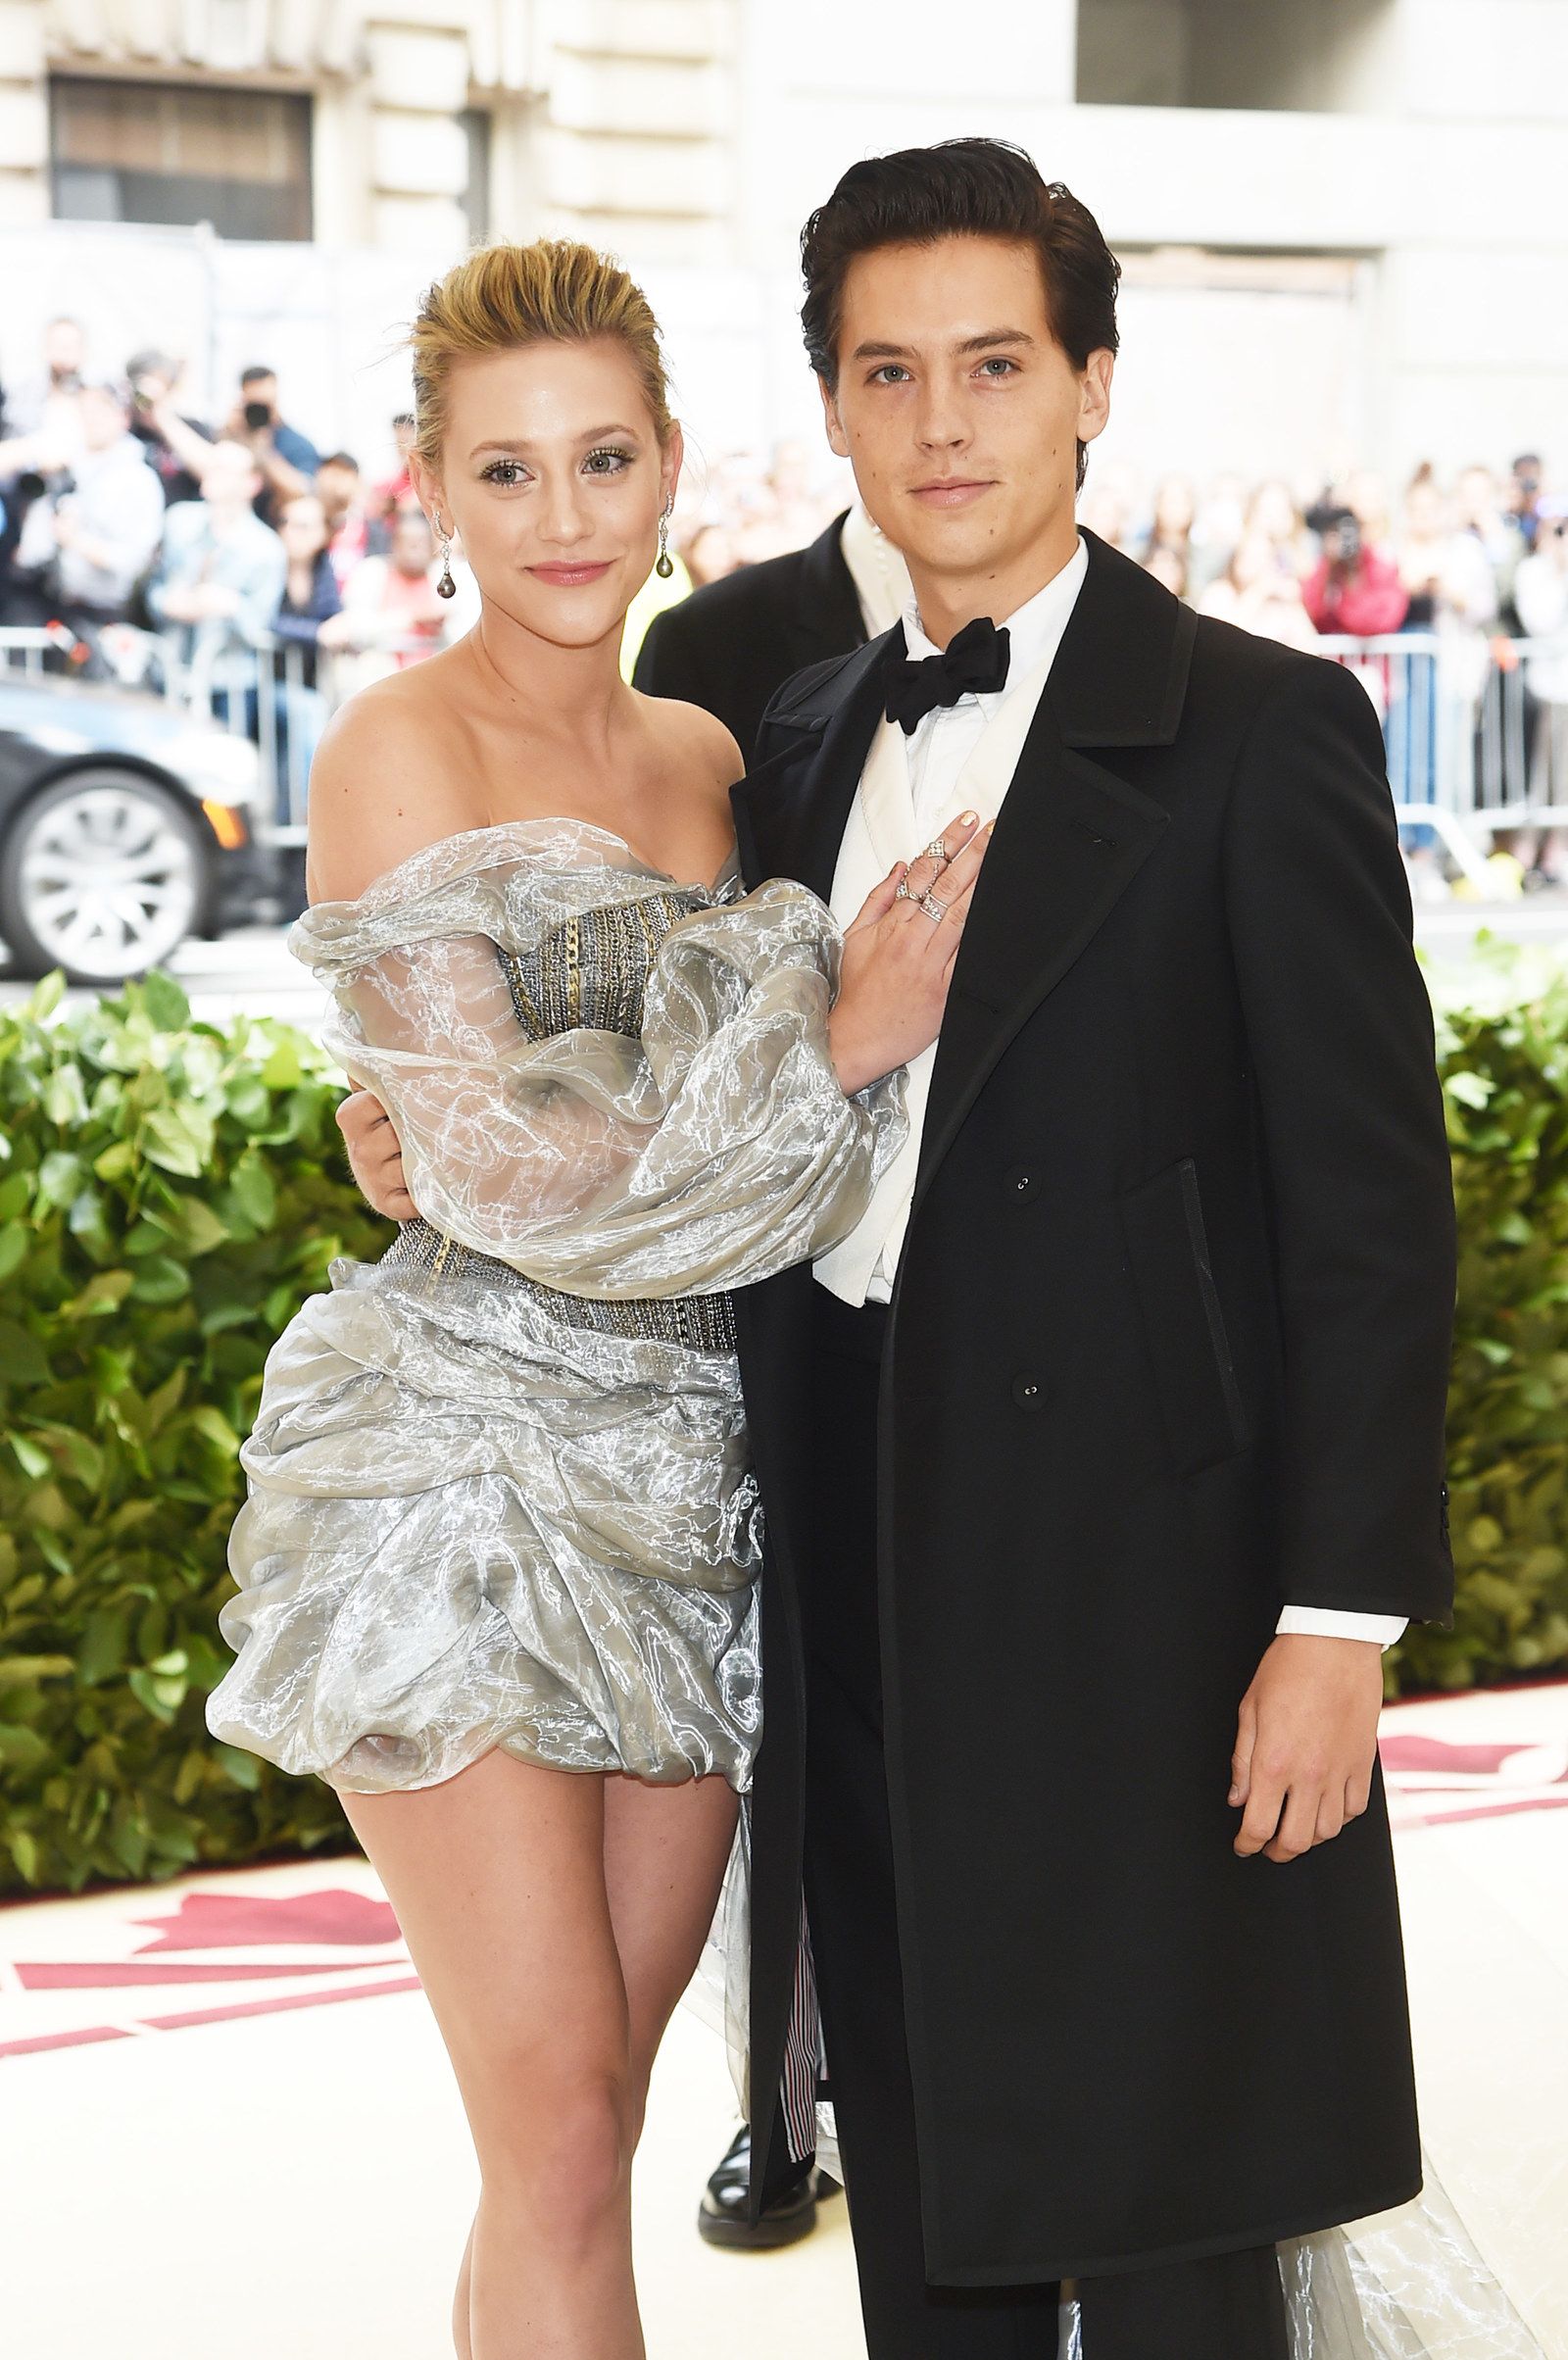 At this point, Lili Reinhart and Cole Sprouse have blessed our timelines with so much adorable couple content, that it's hard to believe they hadn't even made  their Met Gala couple debut  at this point last year.